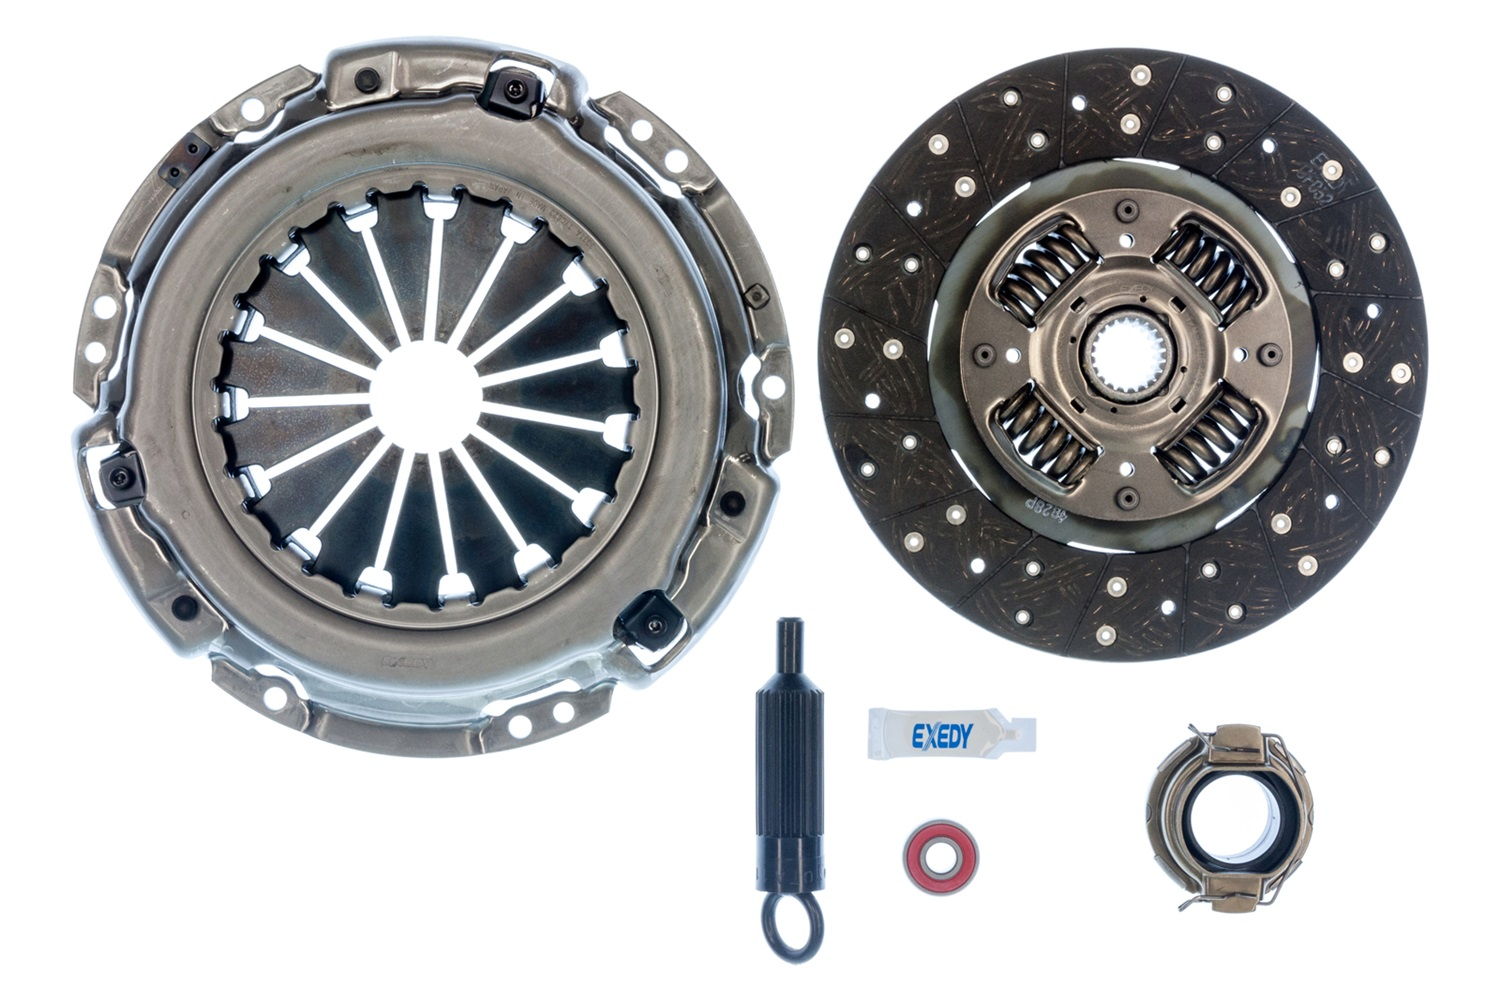 Exedy Racing Clutch 16090 Clutch Kit Fits 94-04 4Runner T100 Pickup Tacoma